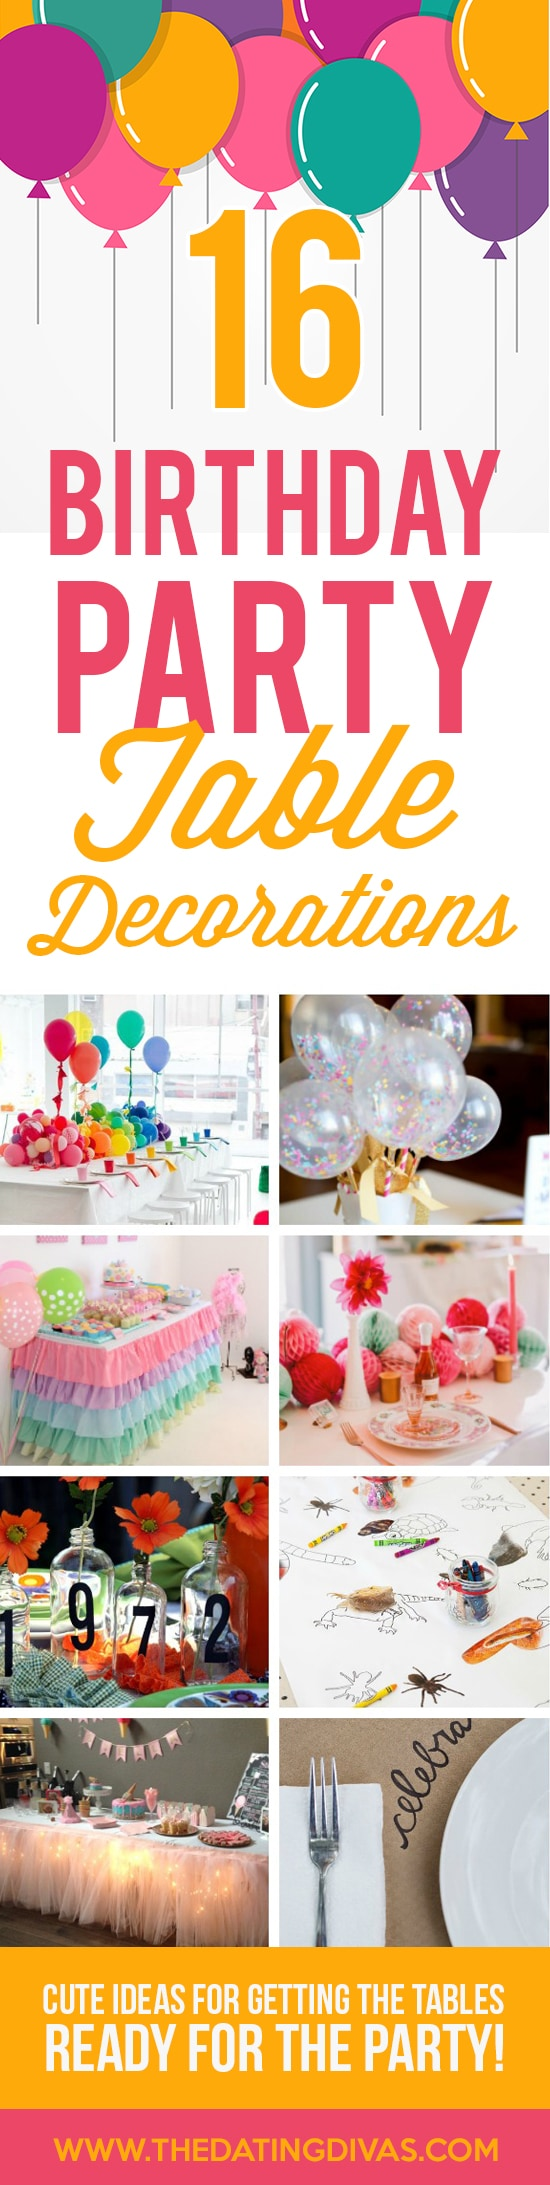 Birthday Party Table Decorations